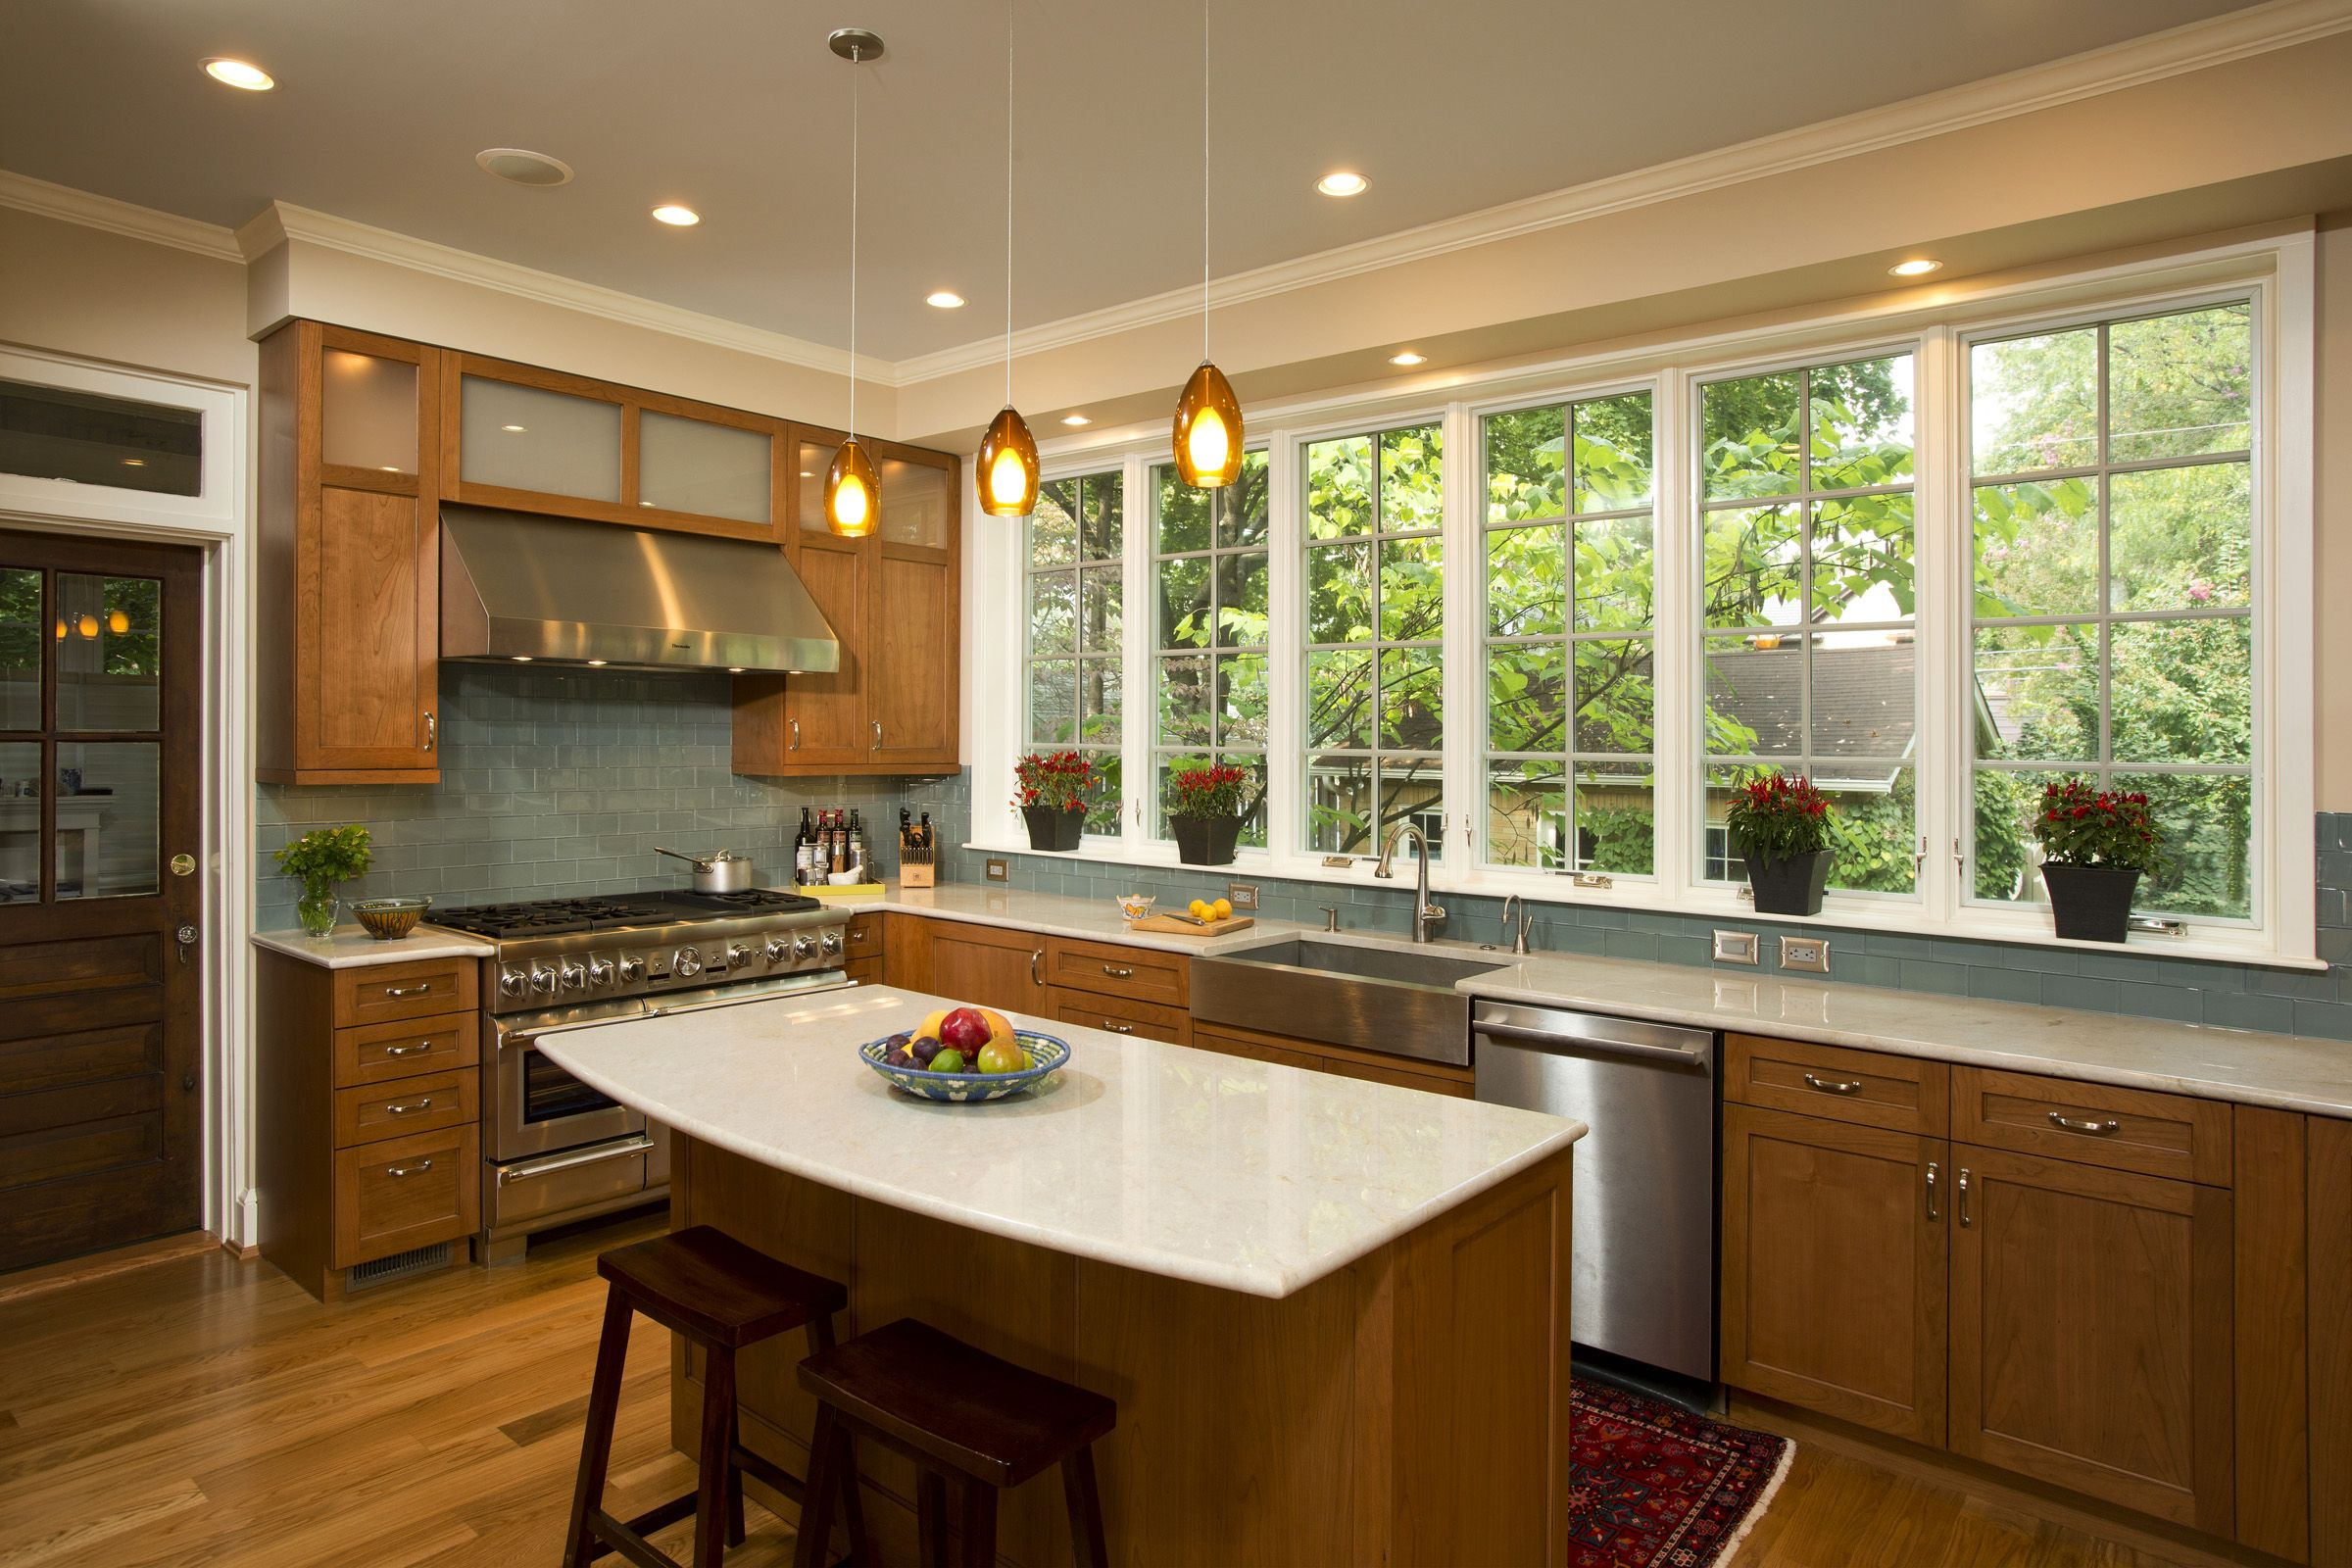 9 foot kitchen ceiling - Saferbrowser Yahoo Image Search ...